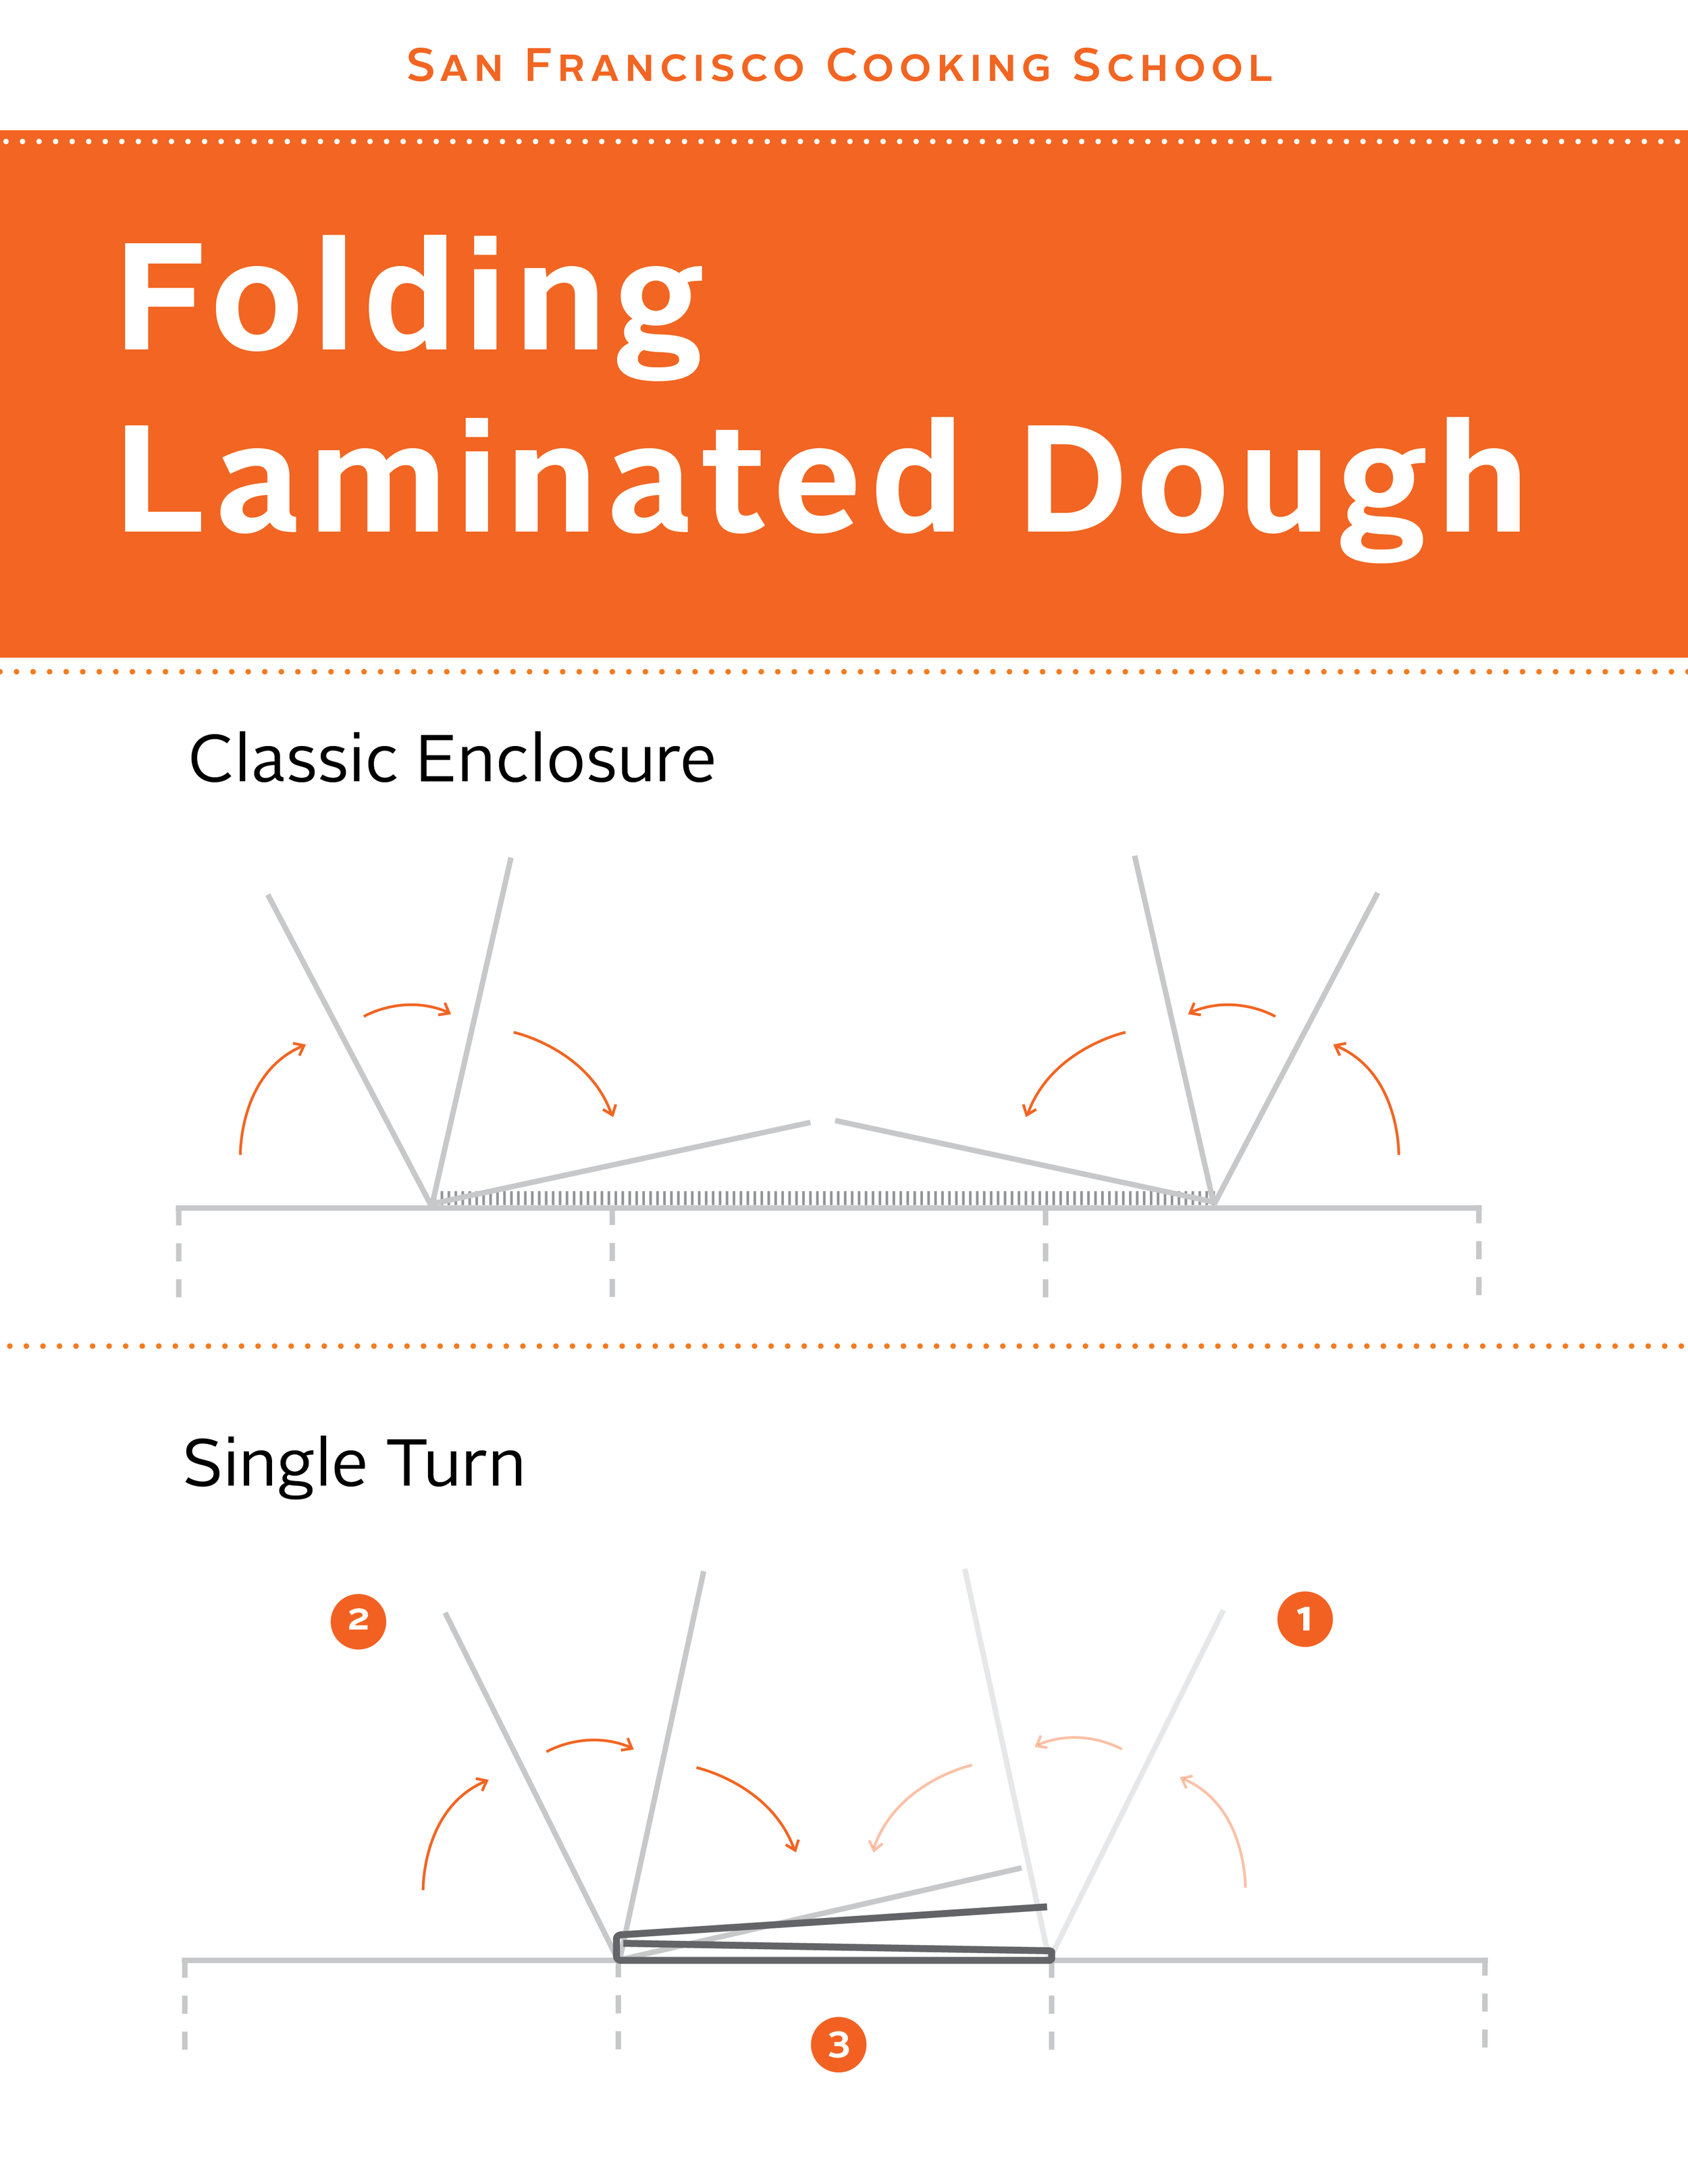 Laminated Dough-Folding SFCS Single Turn Edit.png